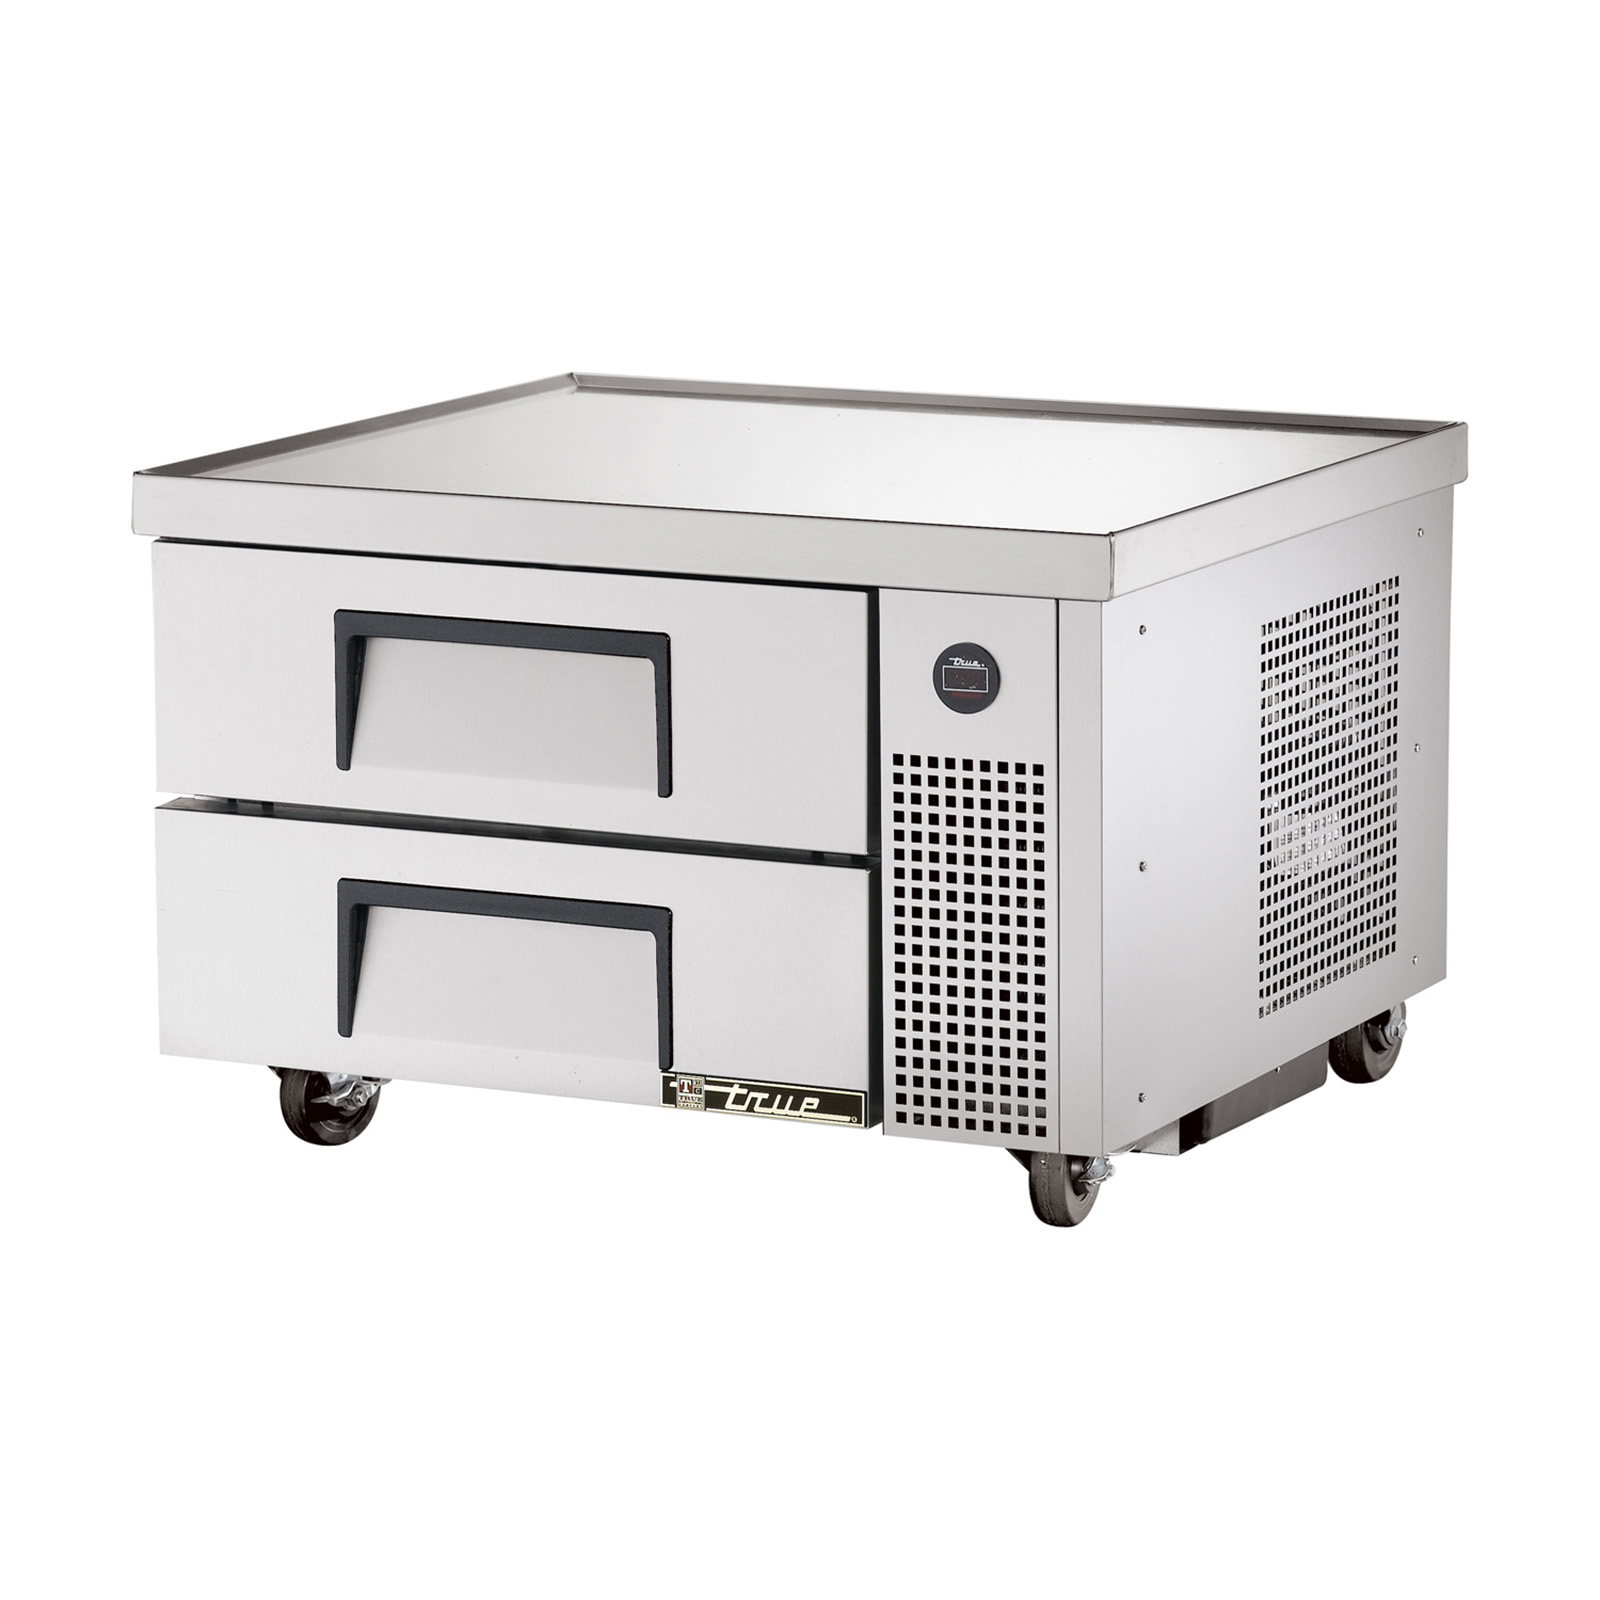 TRCB-36 True - Refrigerated Chef Base 36-3/8